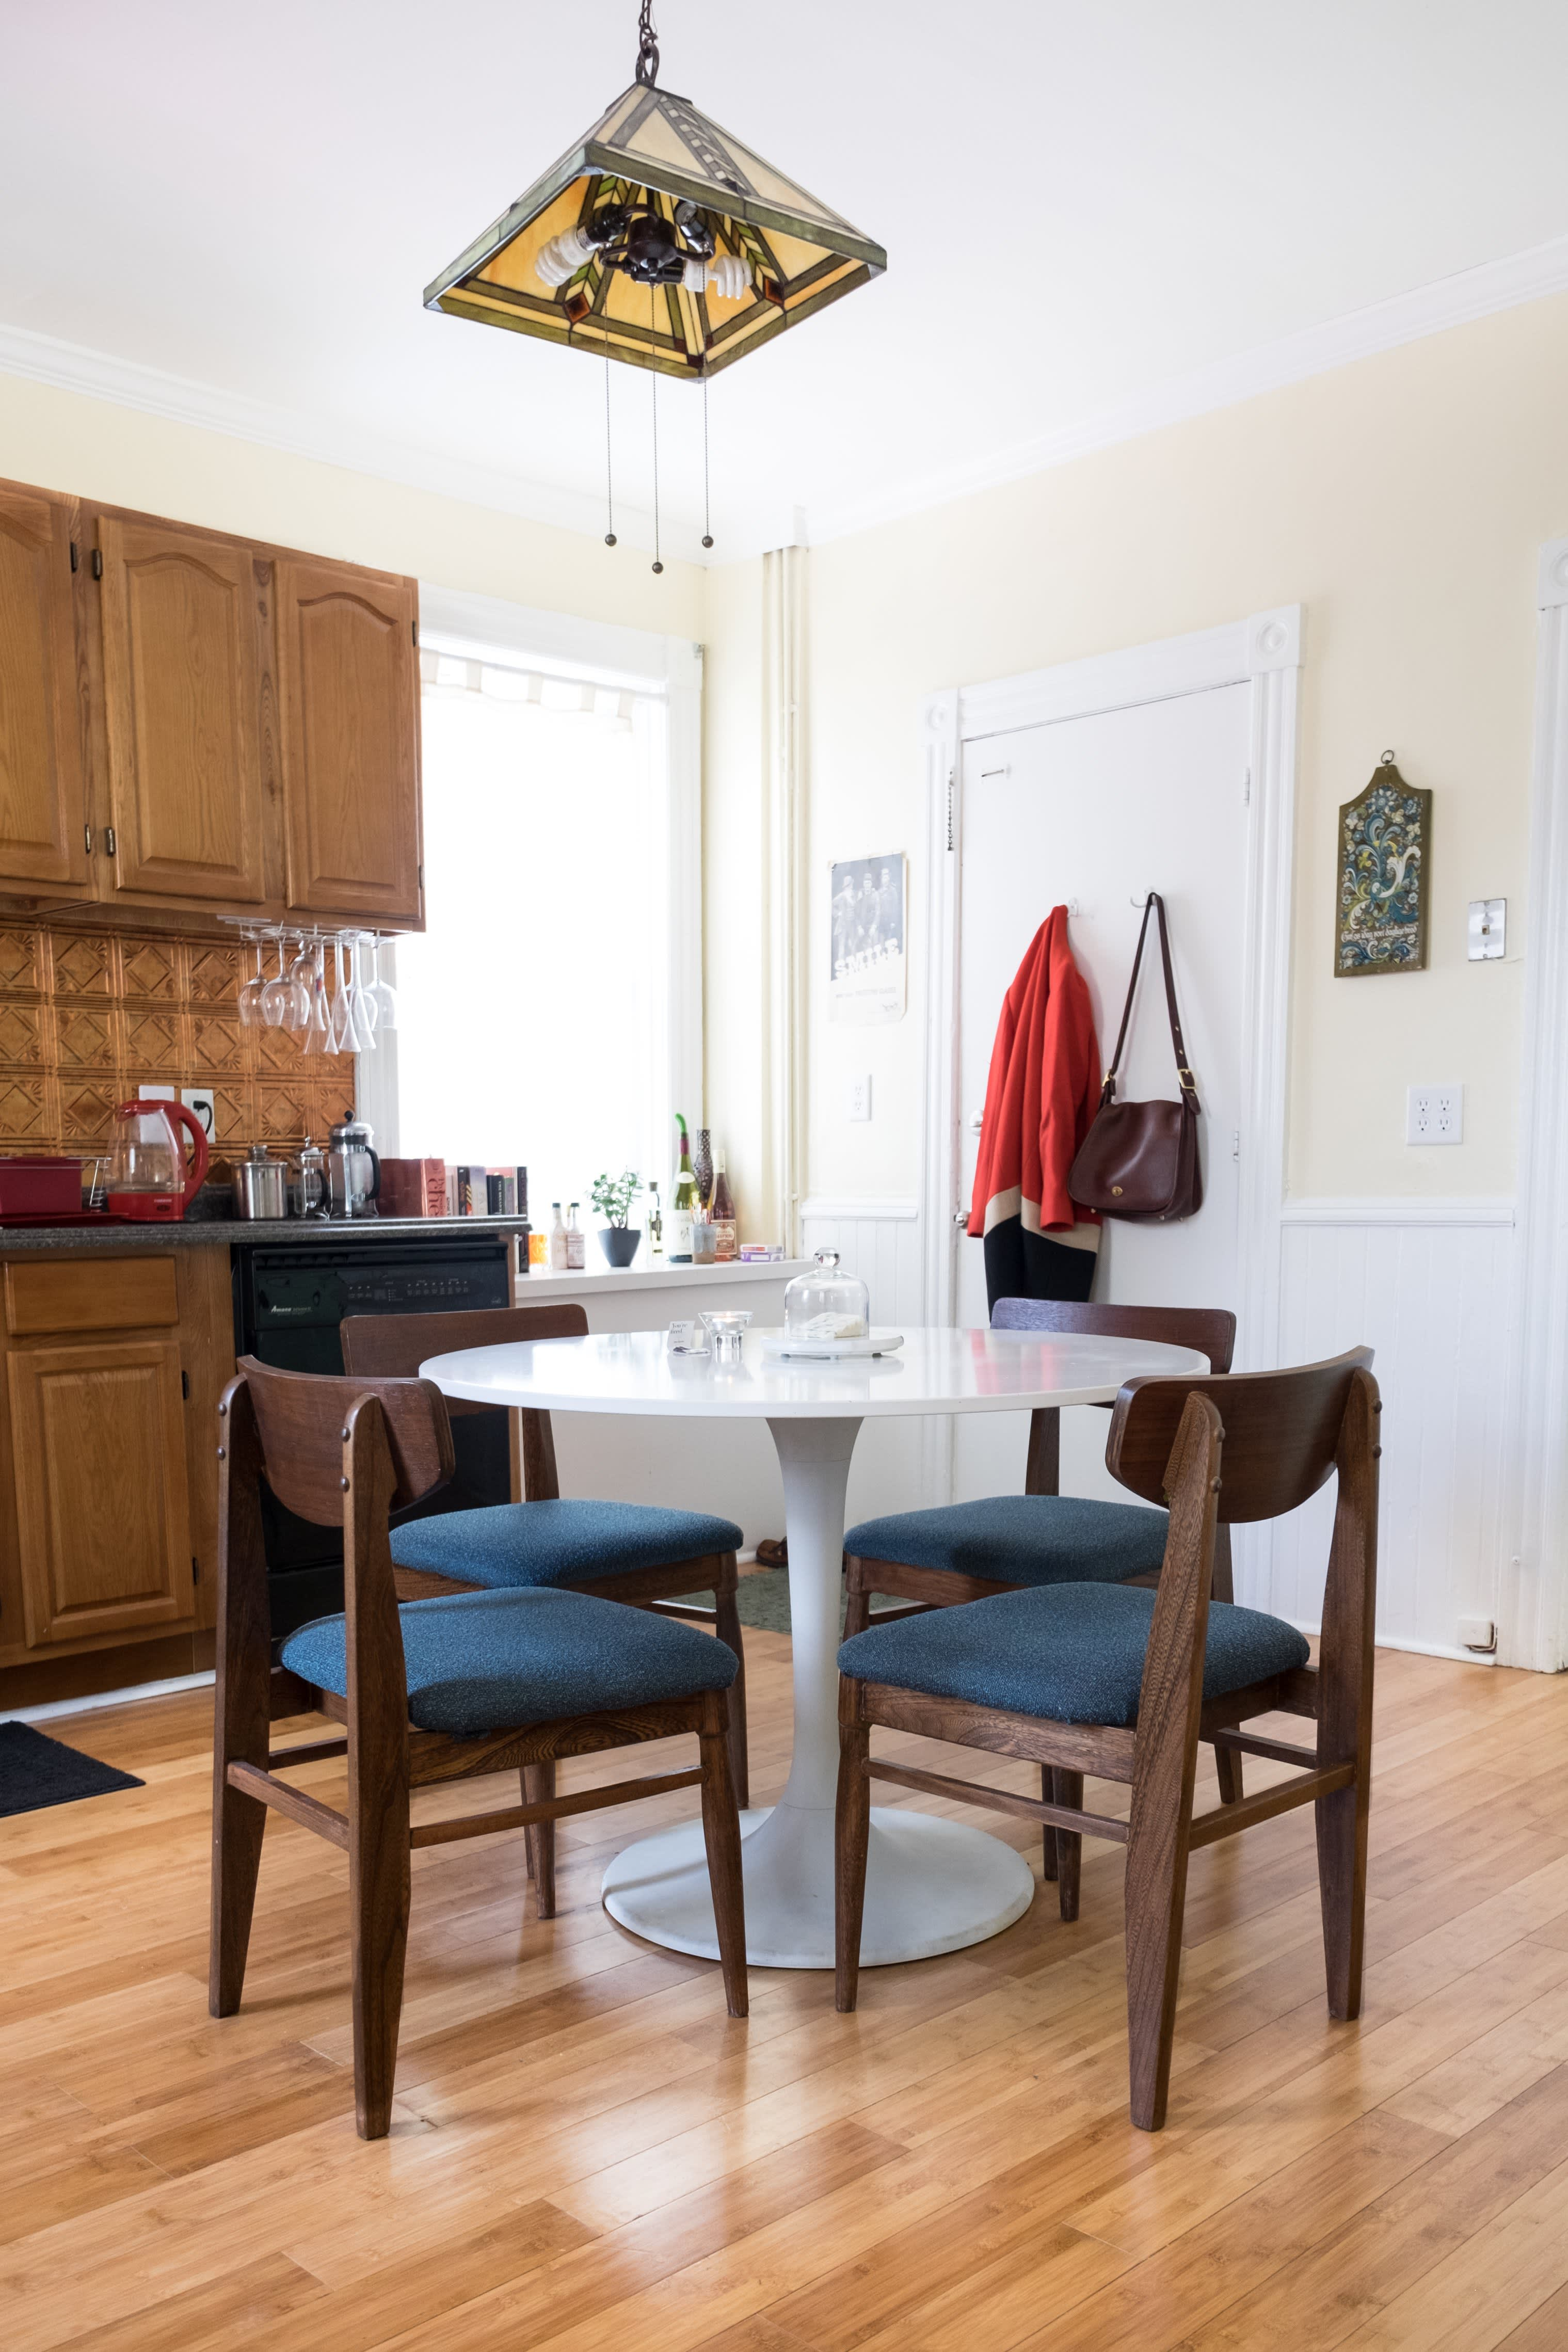 House Tour: A 1960s Mod Home in Providence   Apartment Therapy